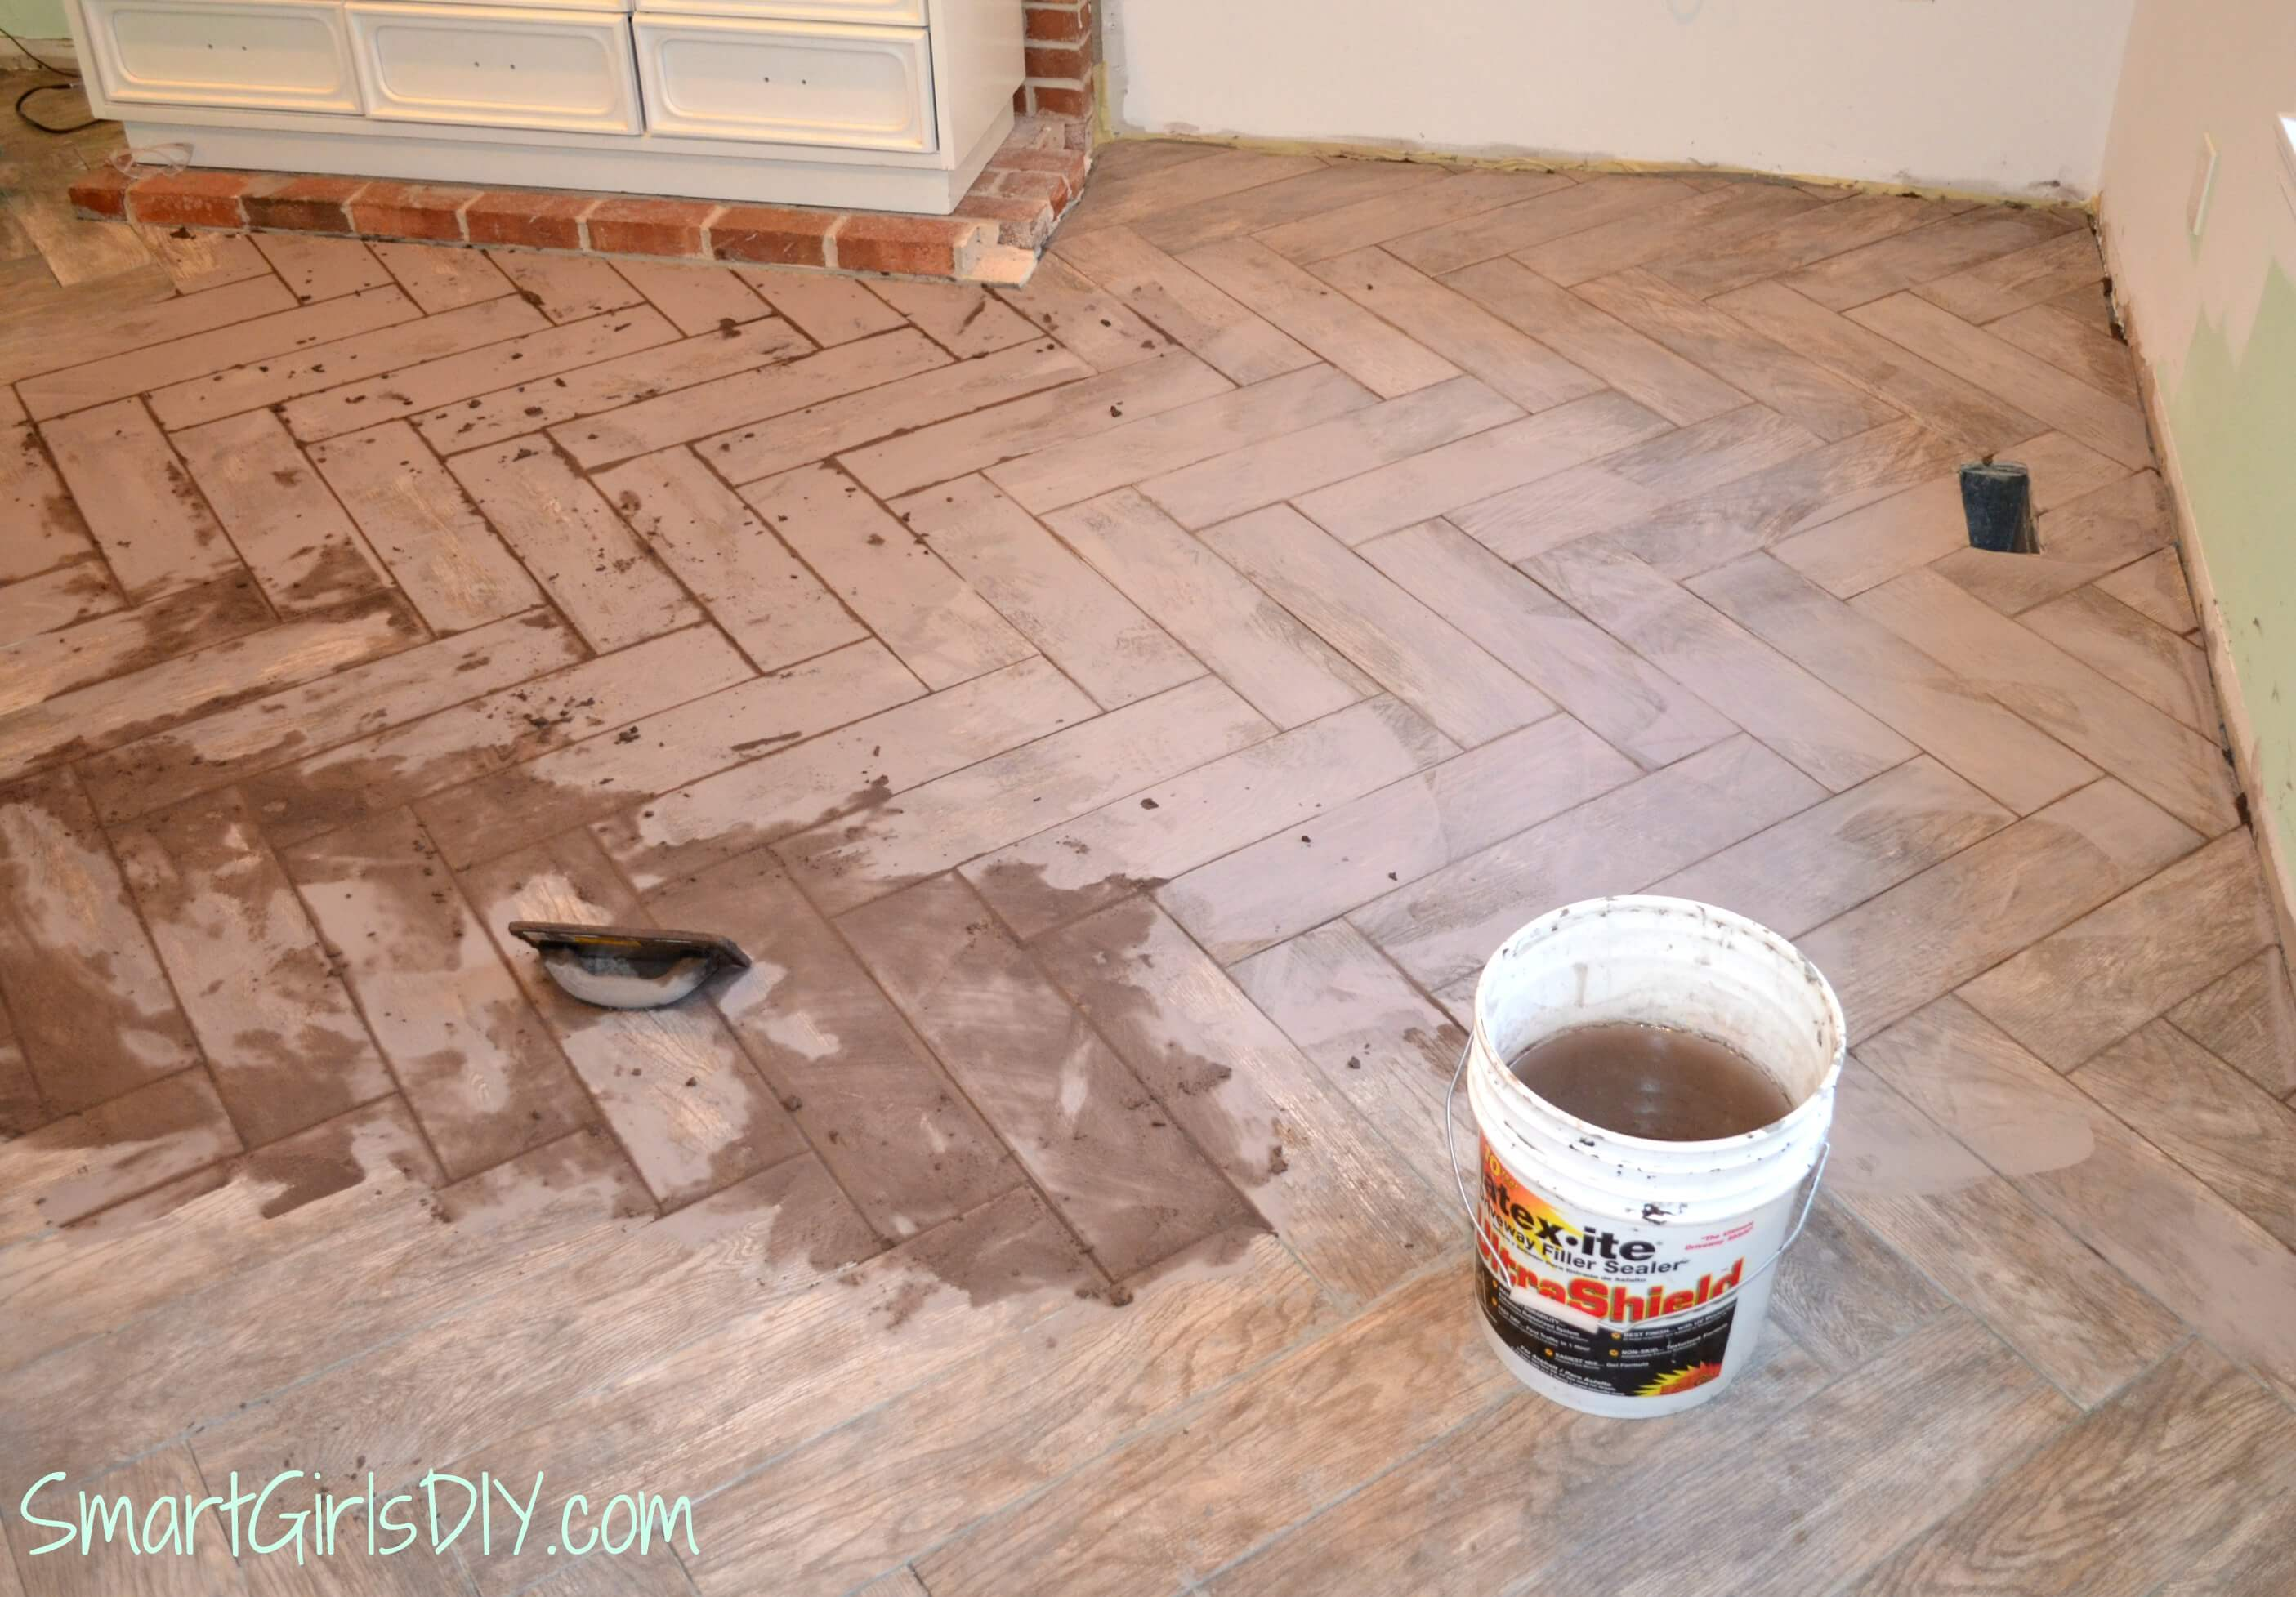 Grouting a herringbone tile floor family room 11 it was easy to grout but not so easy to clean up grouting herringbone tile floor diy dailygadgetfo Images